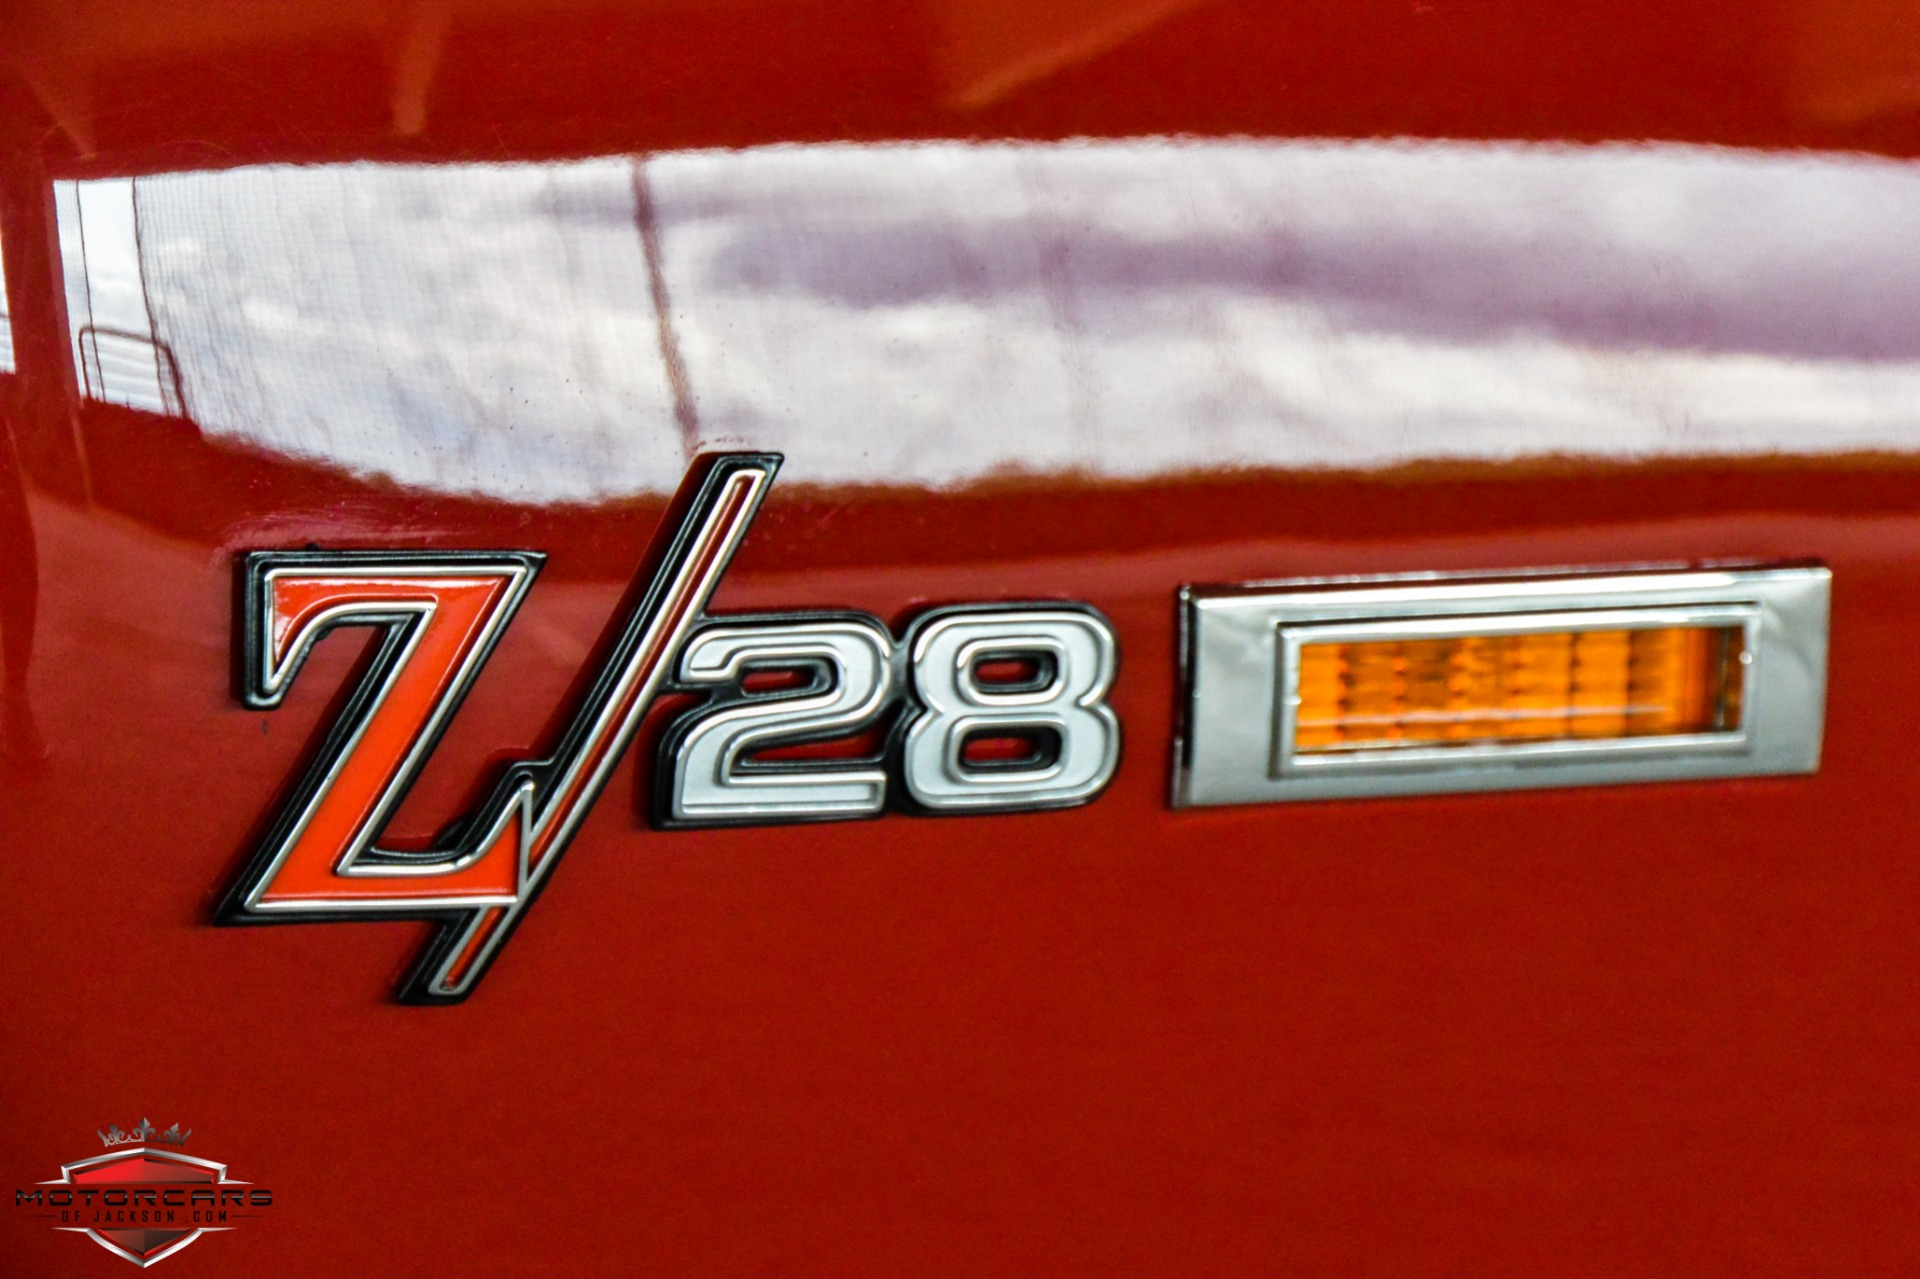 Used-1969-Chevrolet-Camaro-Z/28-RS-All-matching--s-Concours-for-sale-Jackson-MS